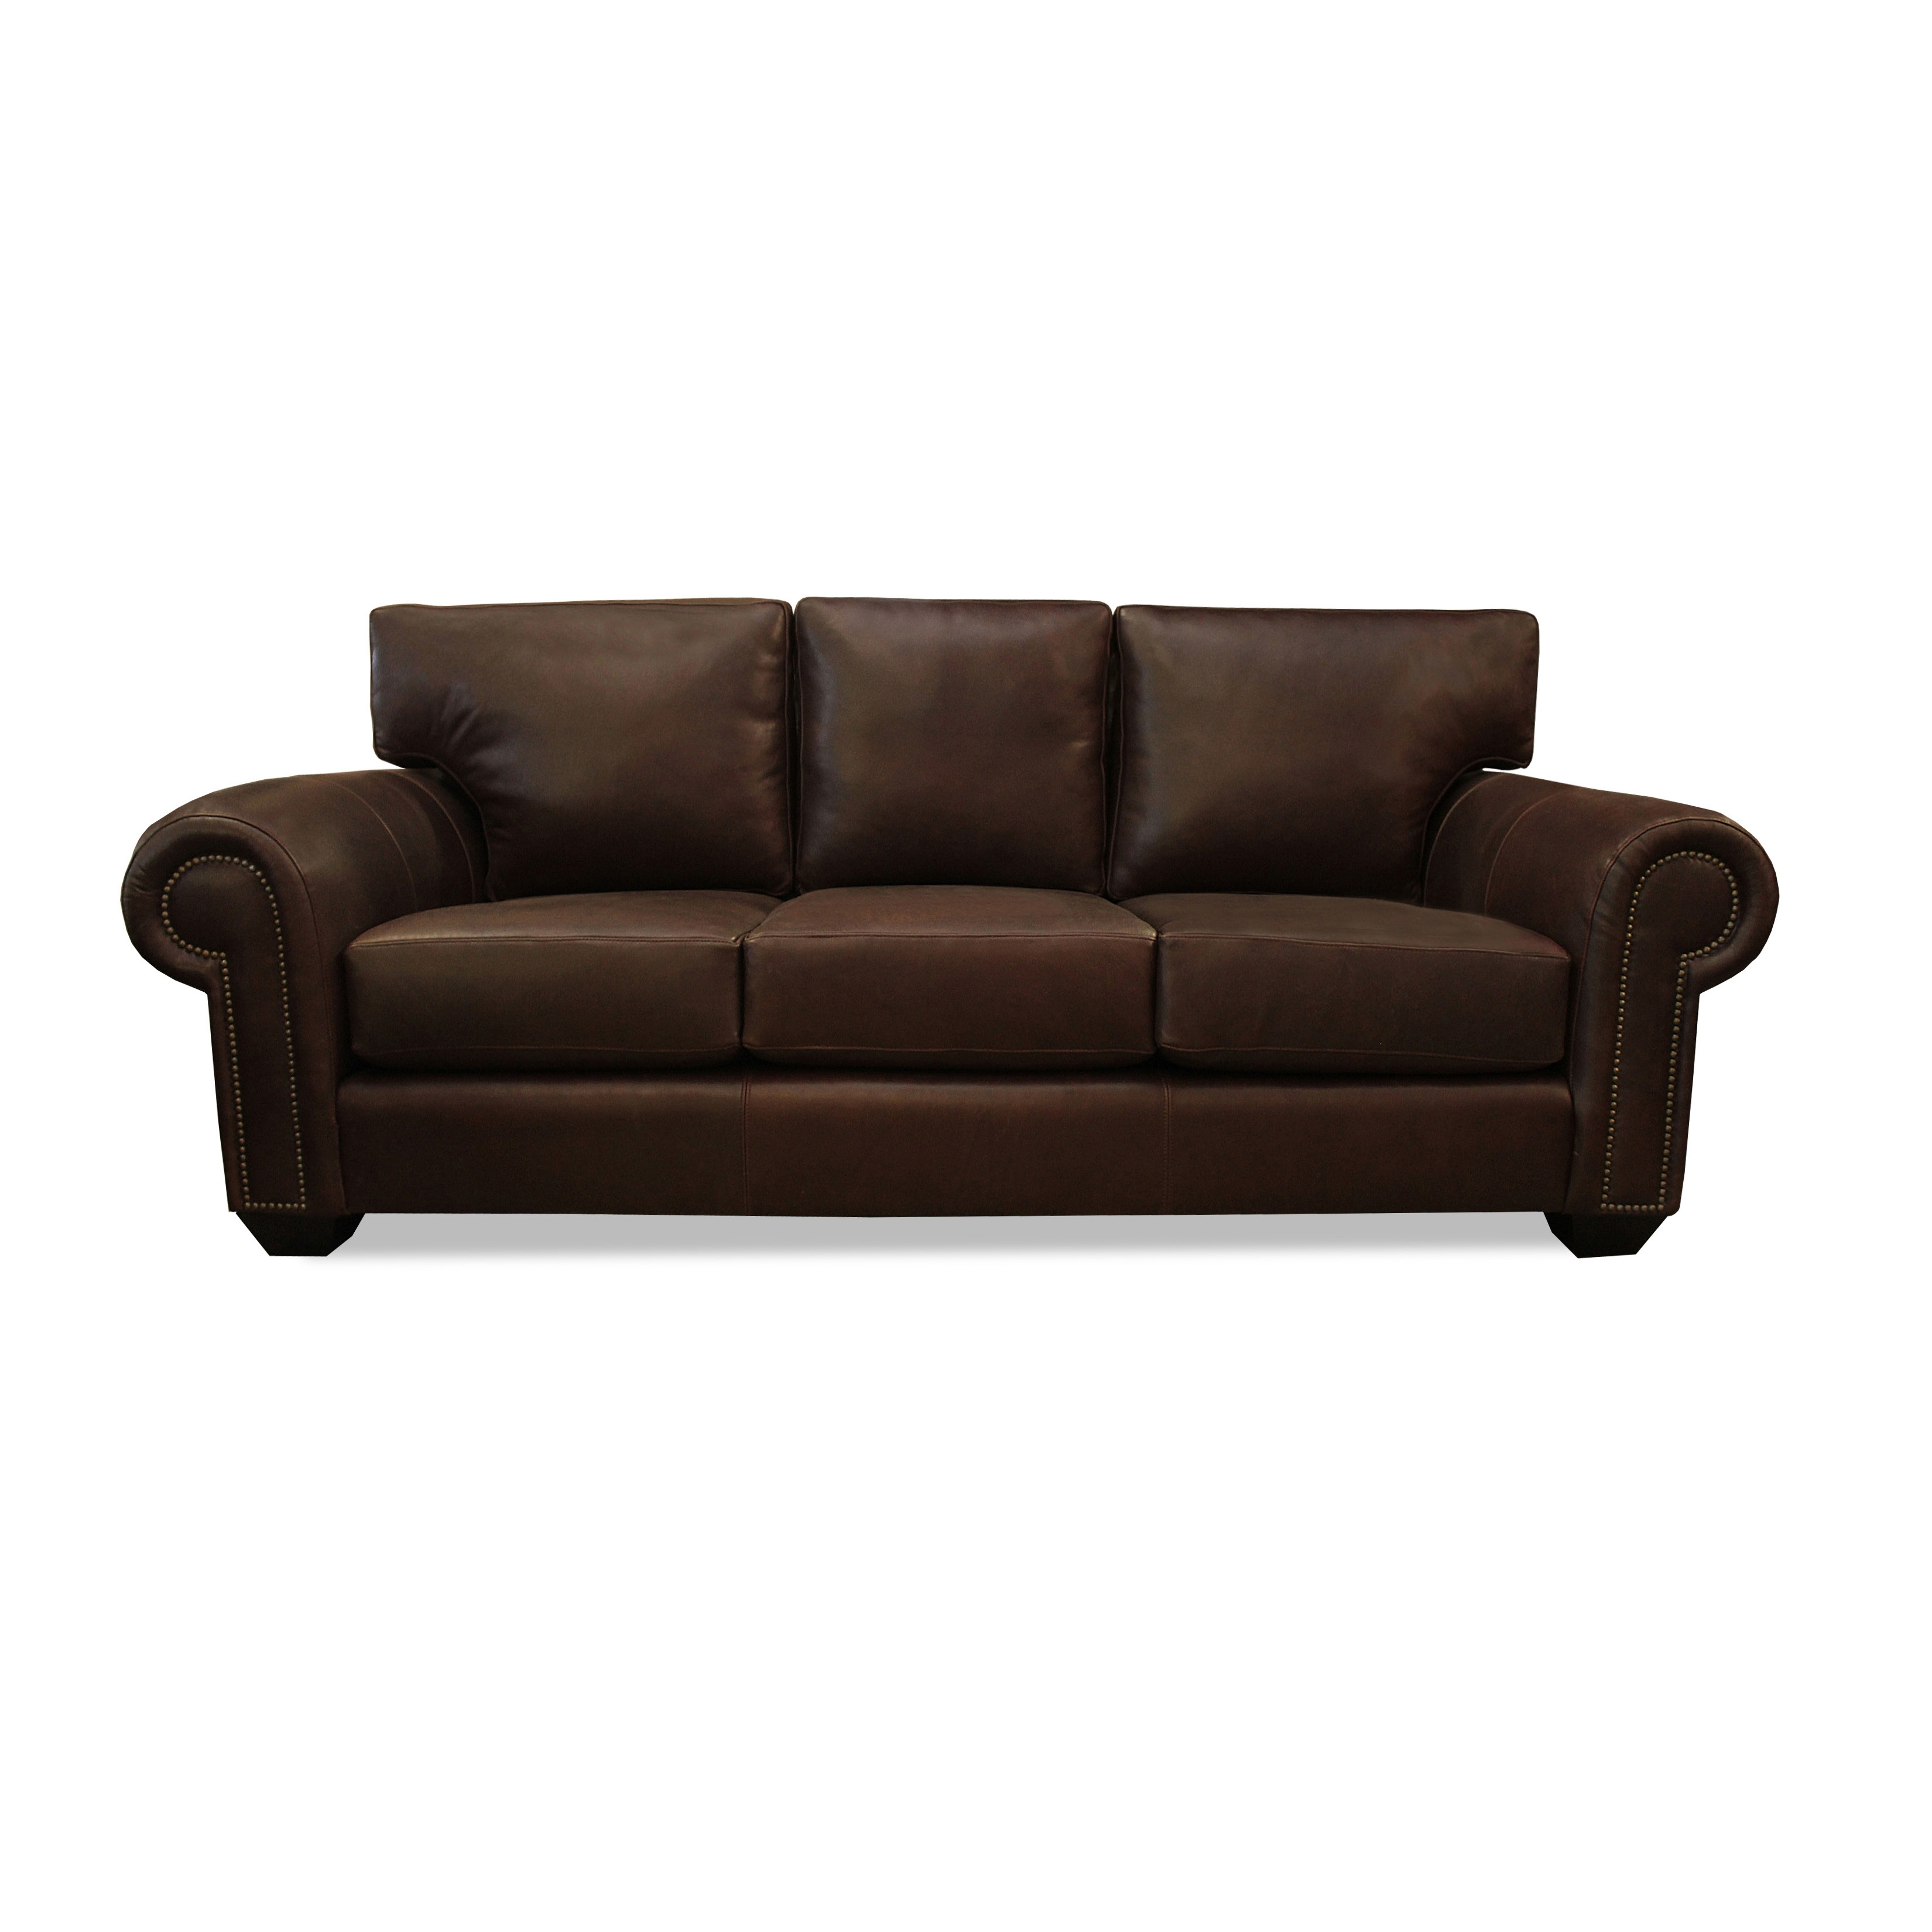 Sofas Manchester Retailer Of One Sofa By